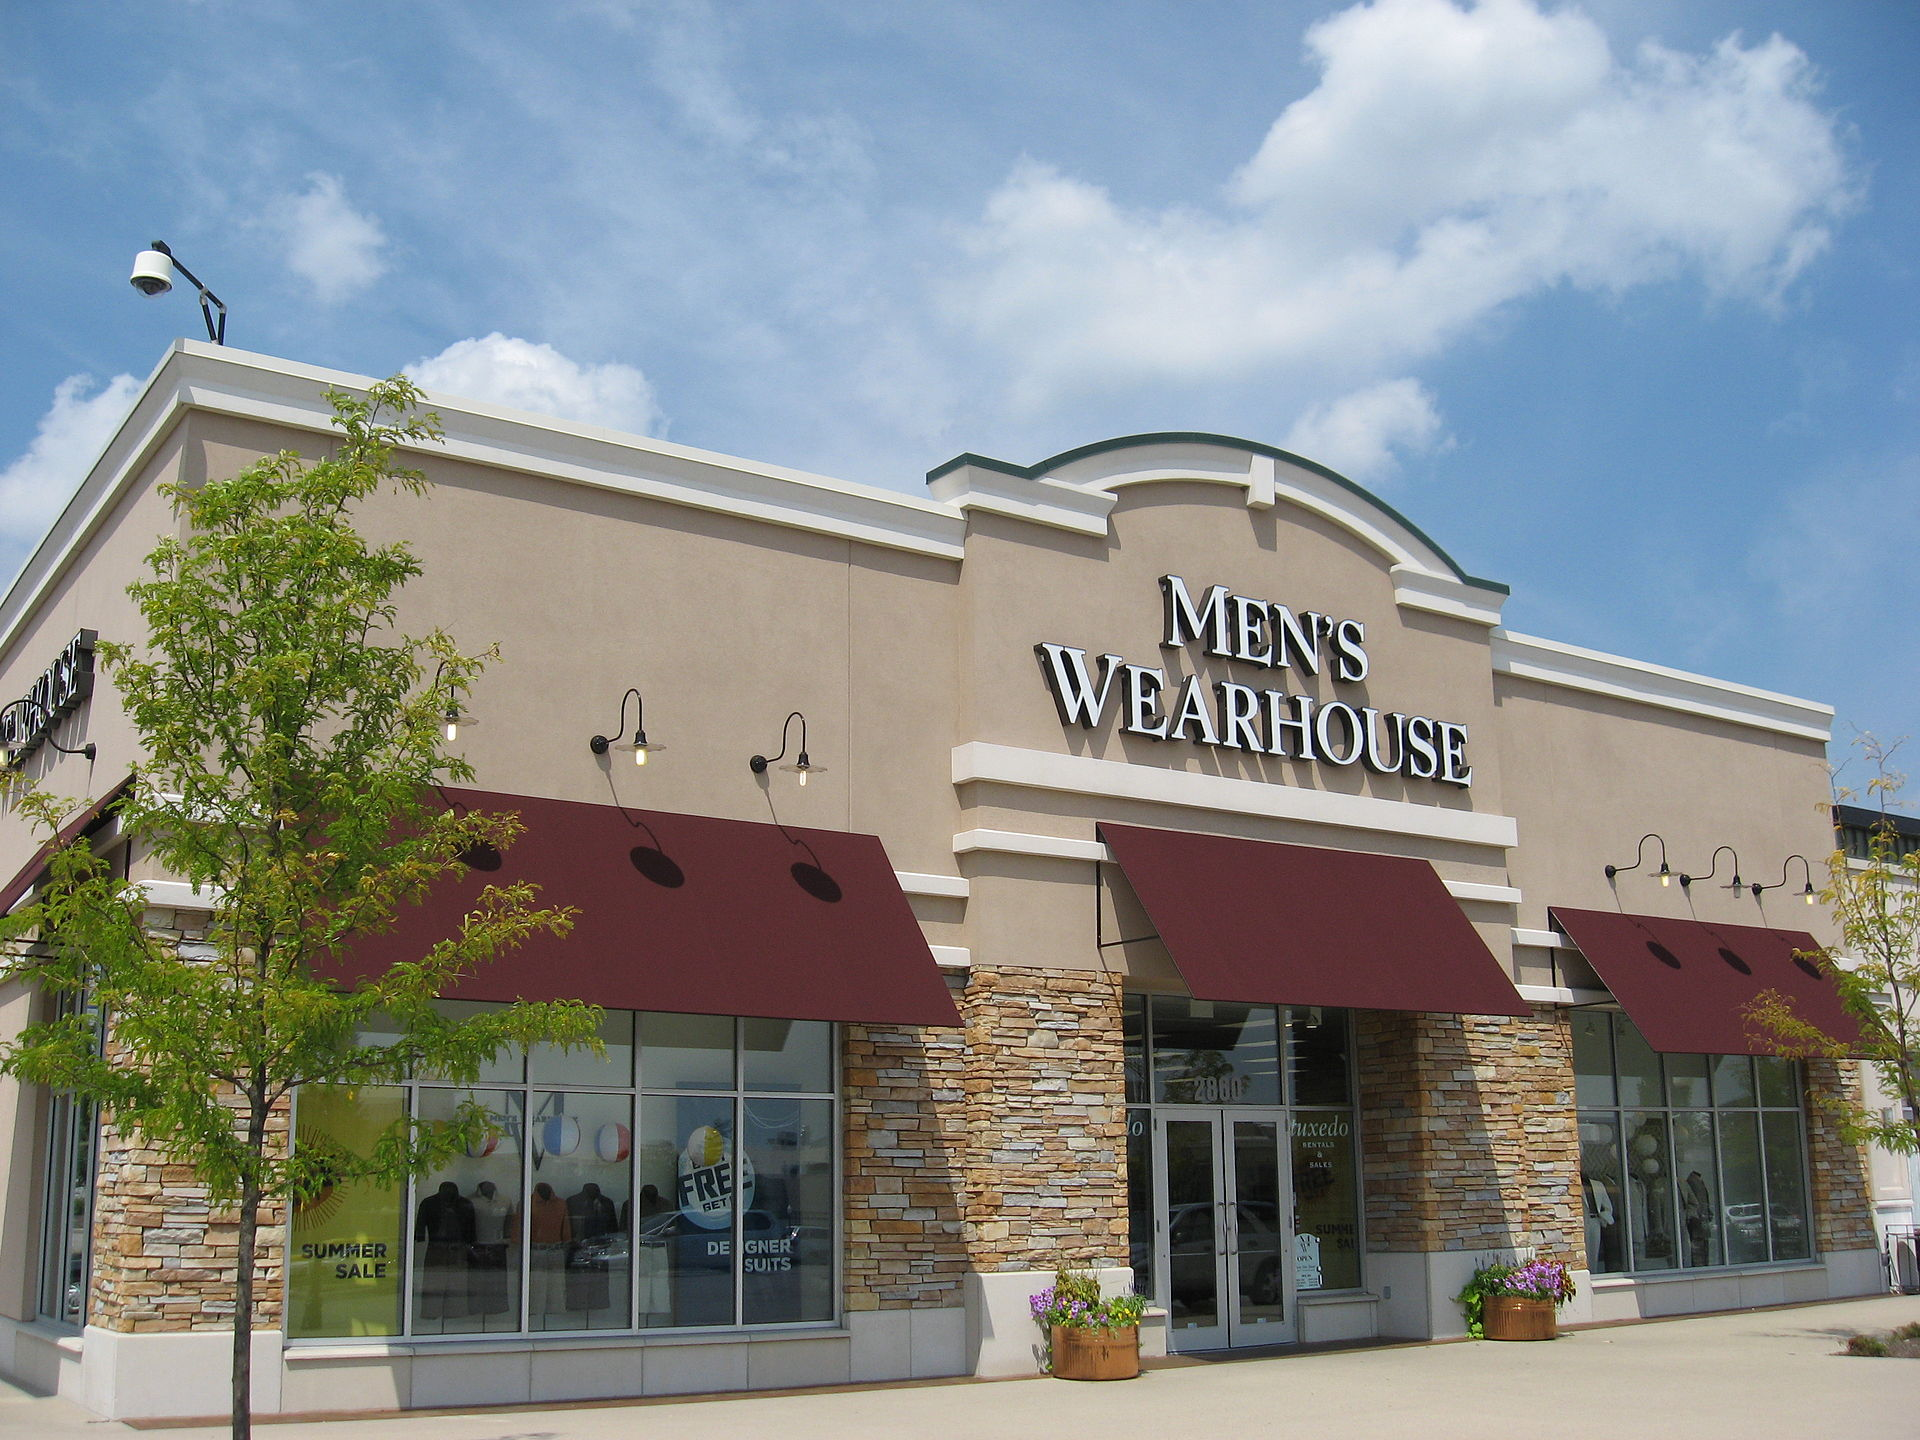 Men's Wearhouse in Miamisburg, Ohio